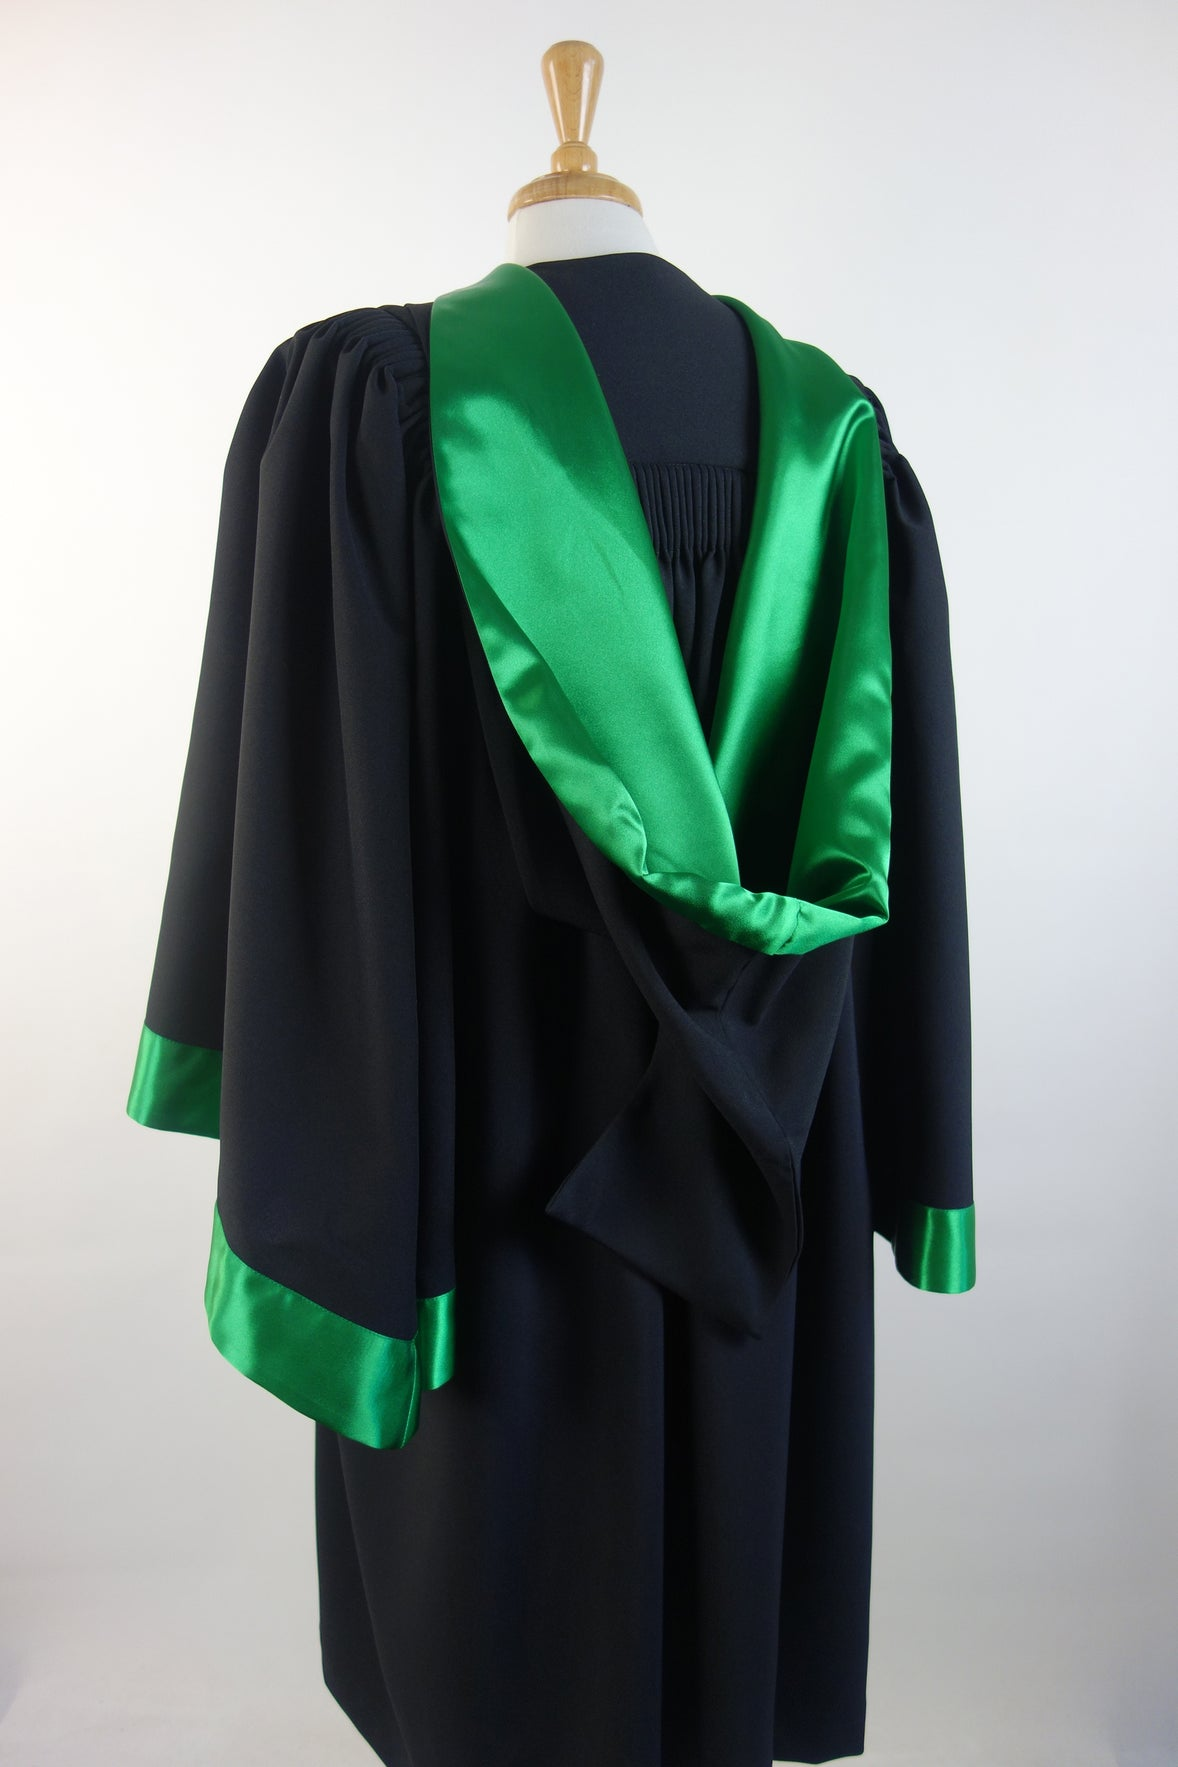 University of Divinity Doctor of Ministries Graduation Gown Suite